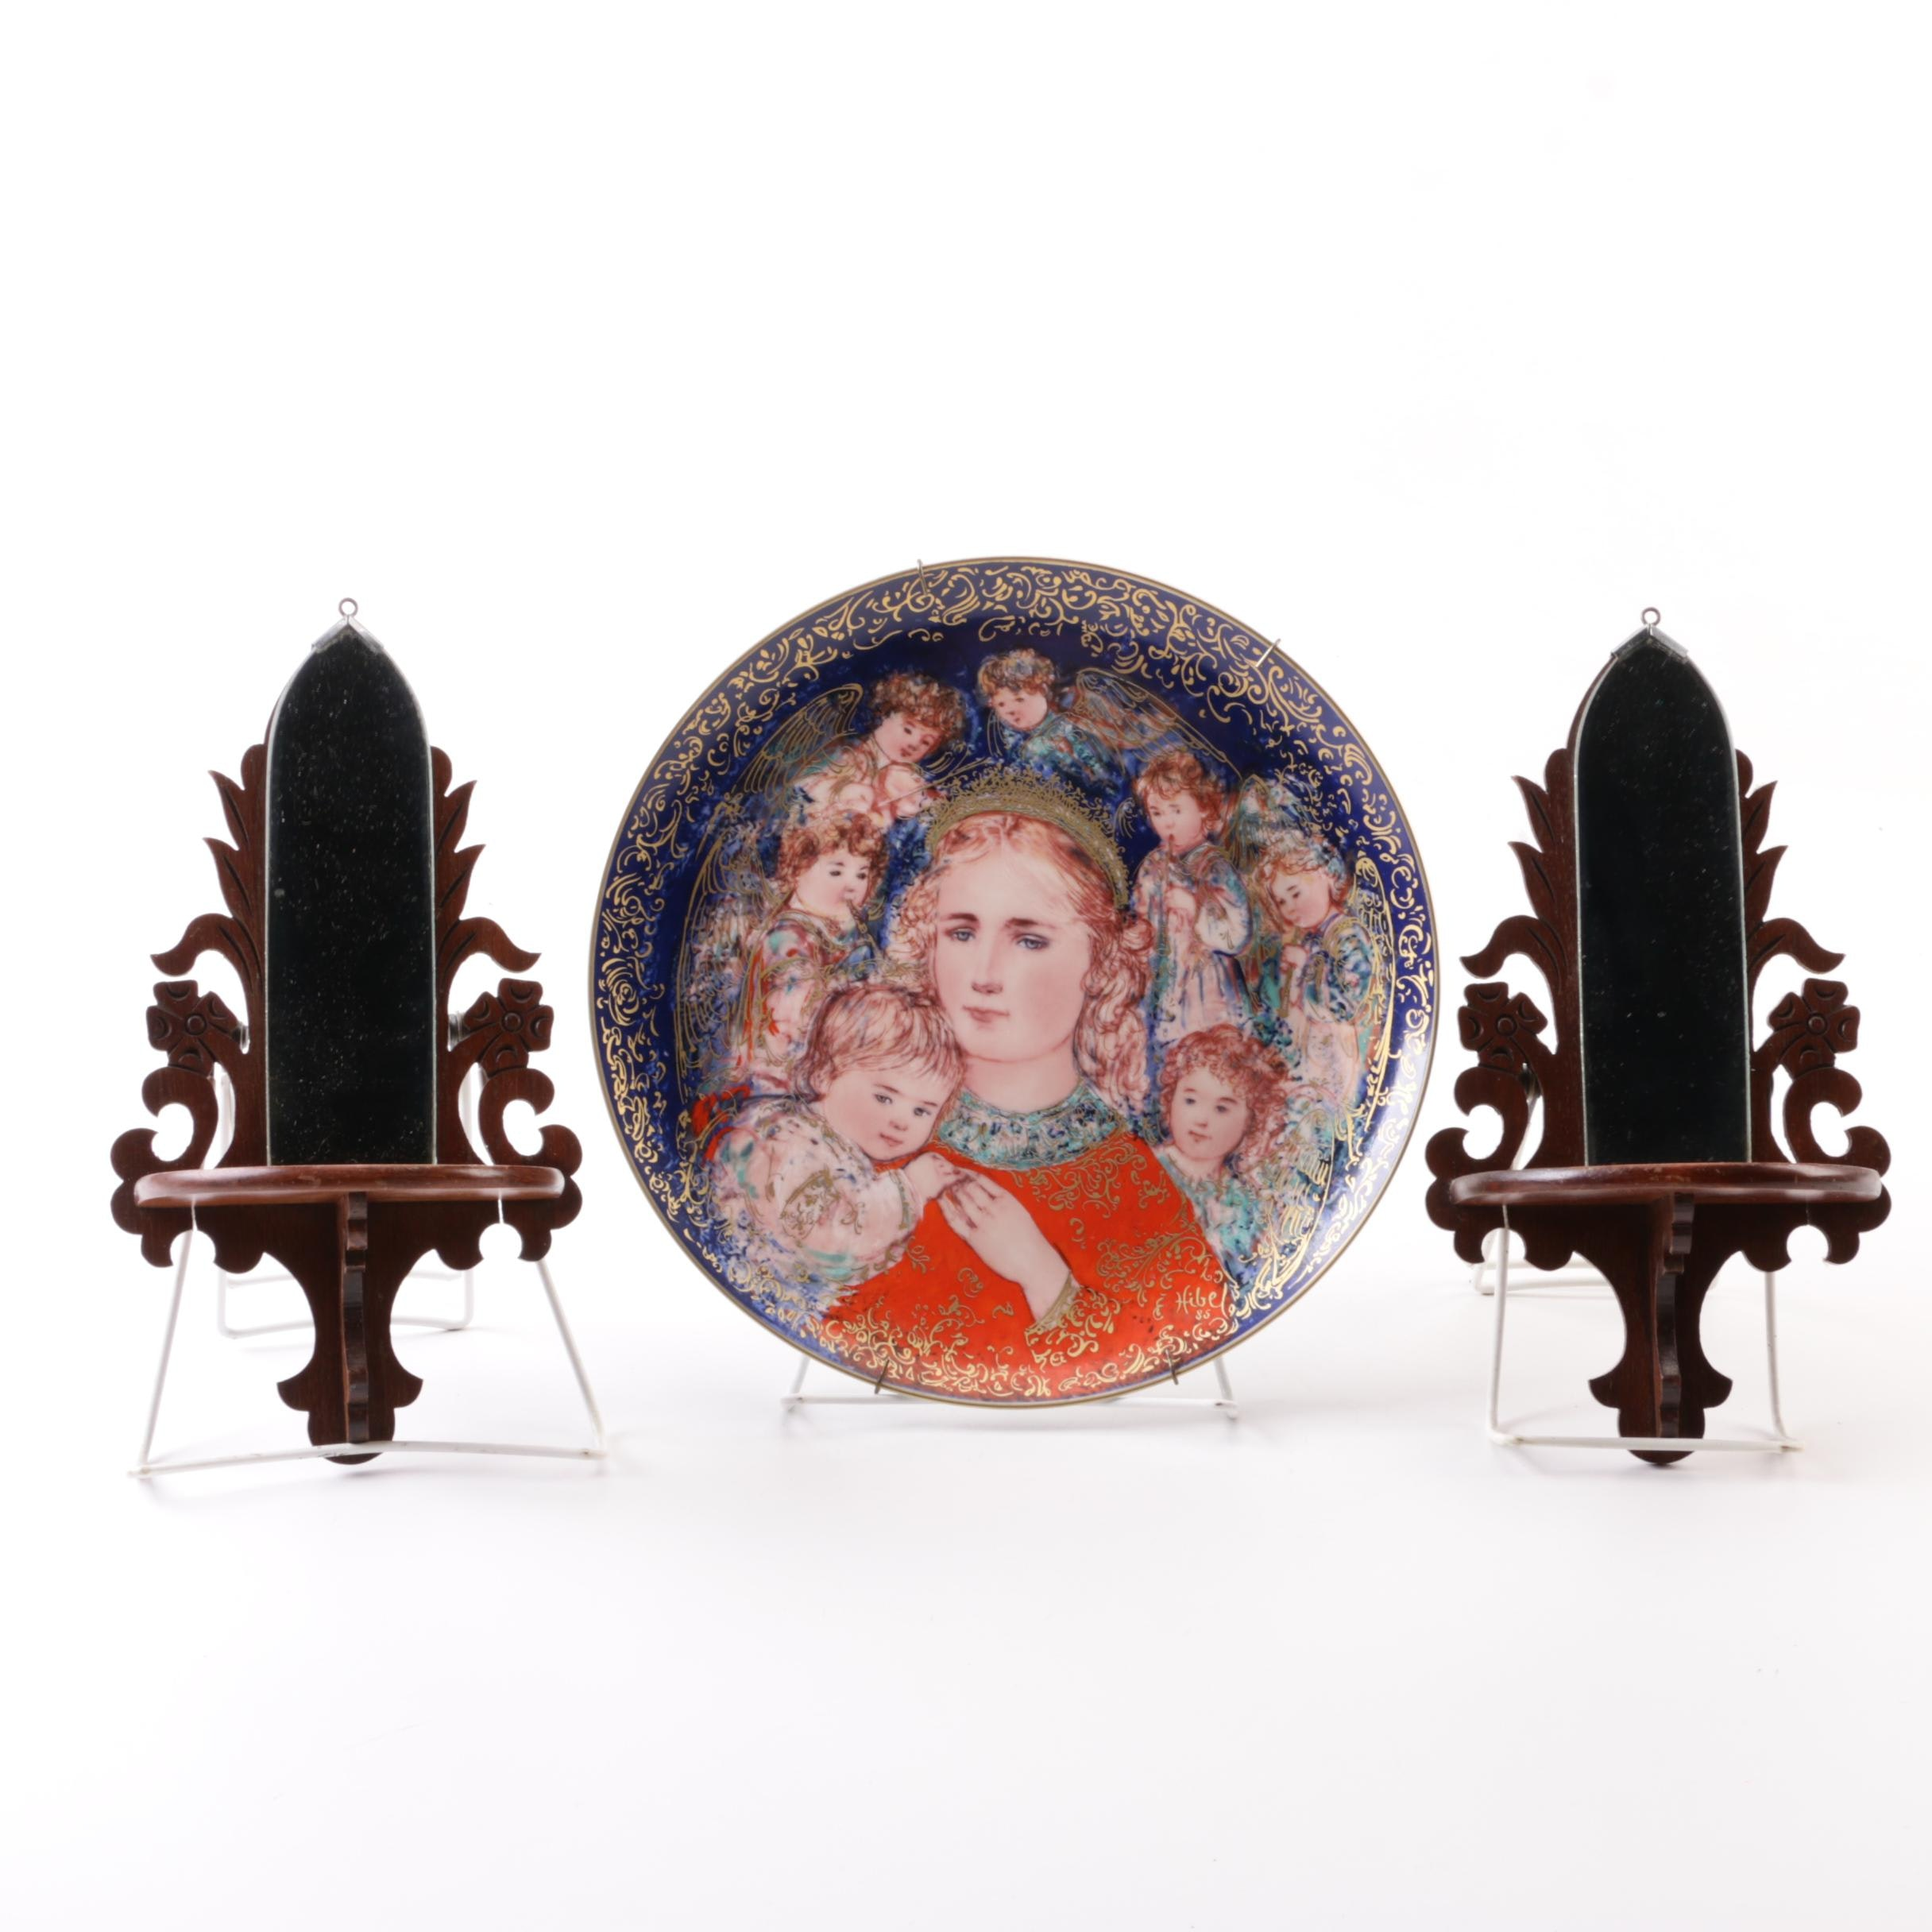 1985 Knowles Edna Hibel Christmas Plate and Scroll Products Wall Shelves